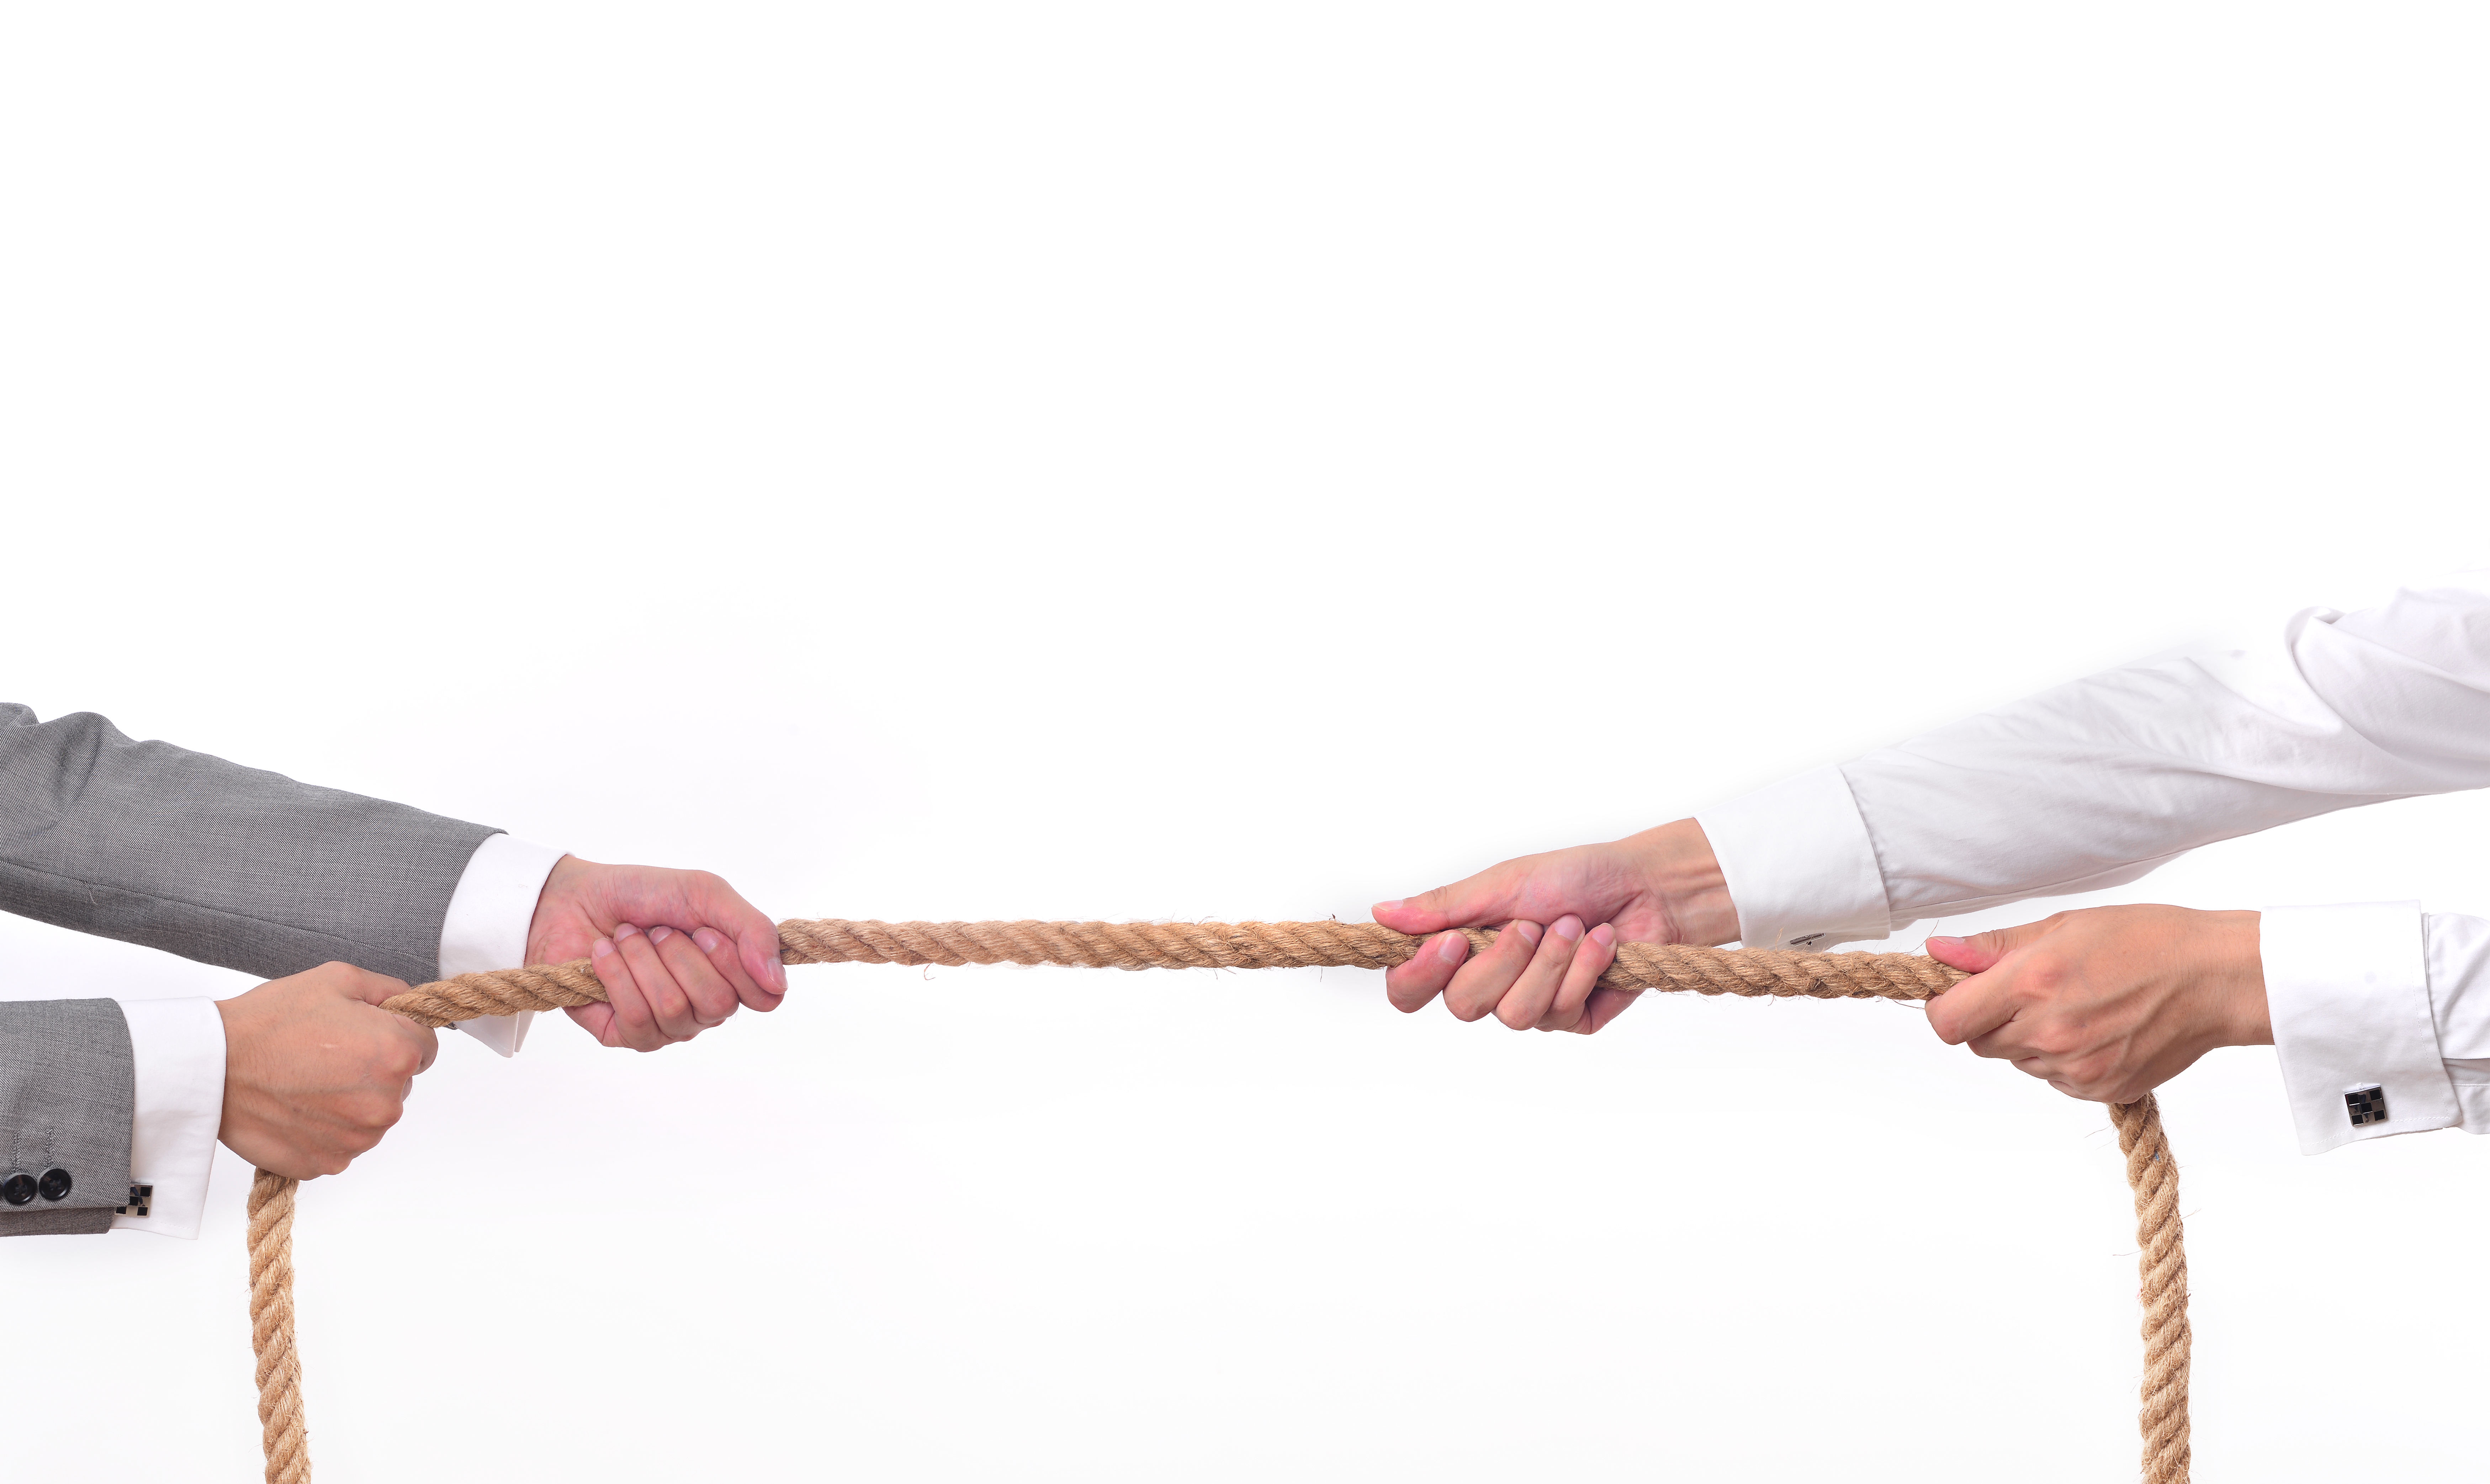 Tug war, two businessman pulling a rope in opposite directions isolated on white background